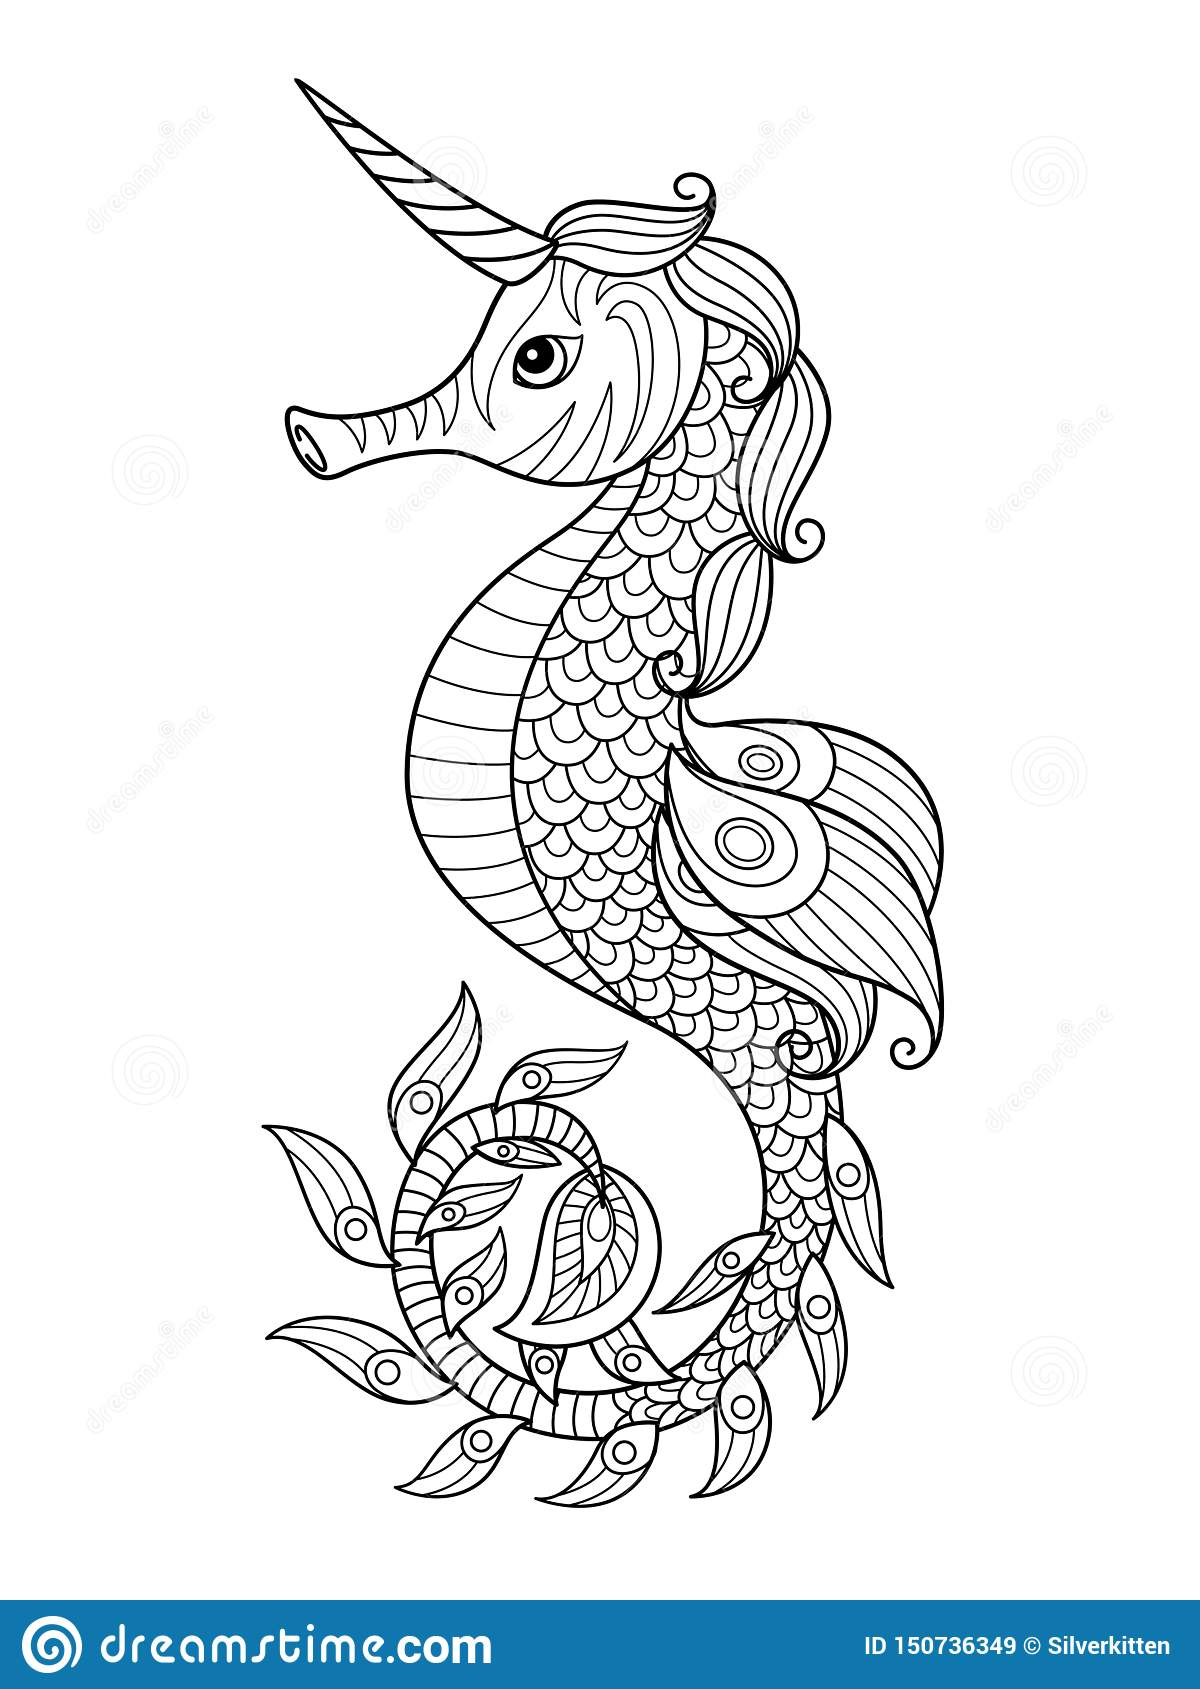 Coloring Book Seahorse Stock Illustrations 382 Coloring Book Seahorse Stock Illustrations Vectors Clipart Dreamstime